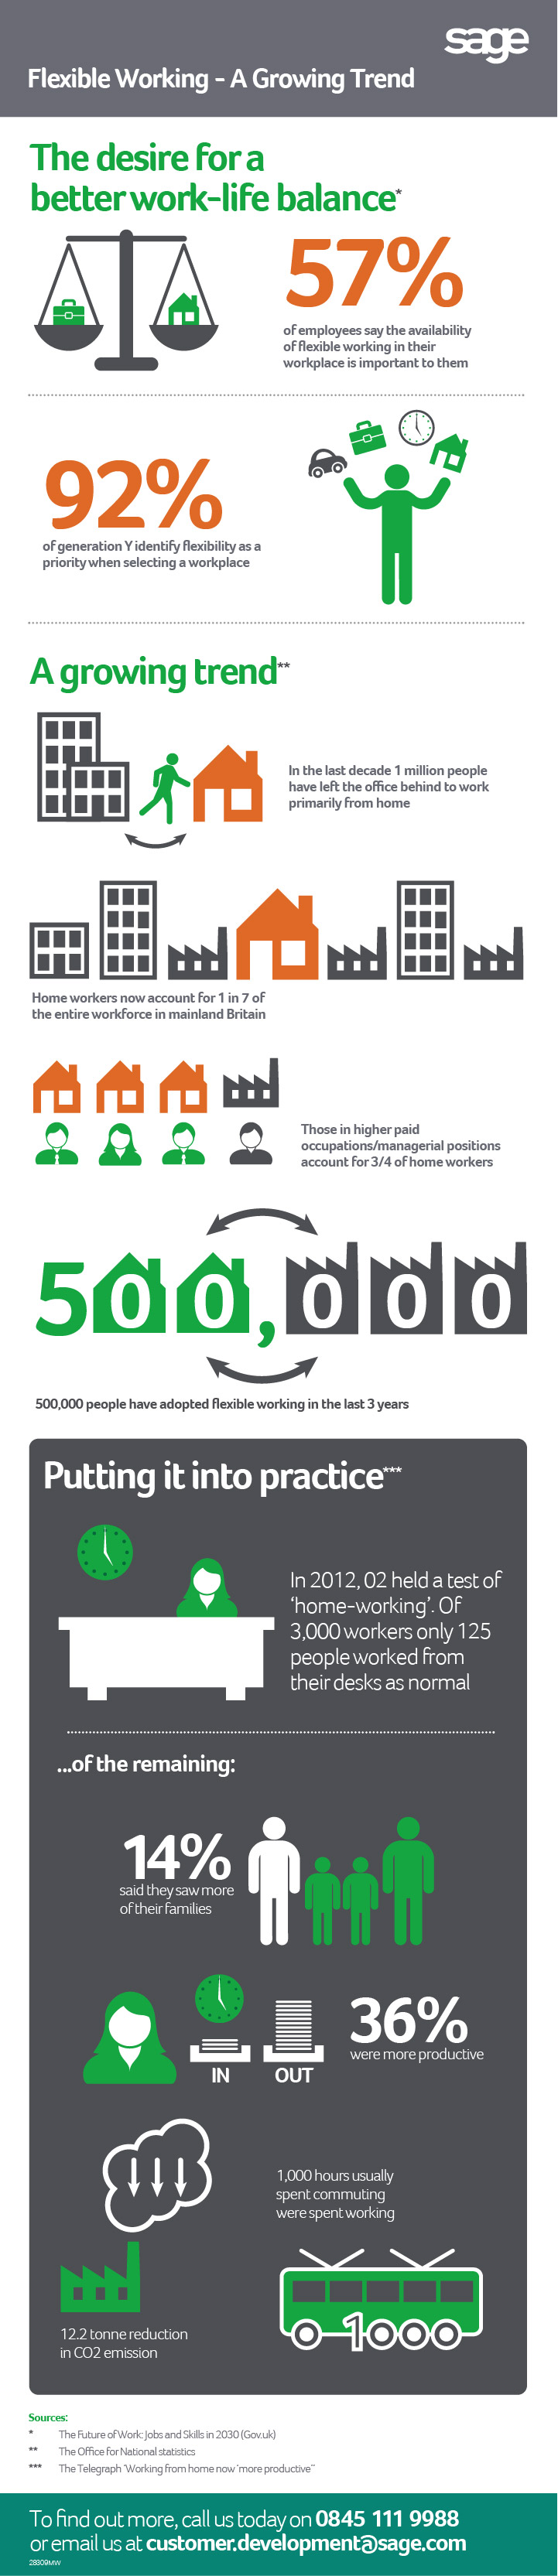 Sage flexible working infographic